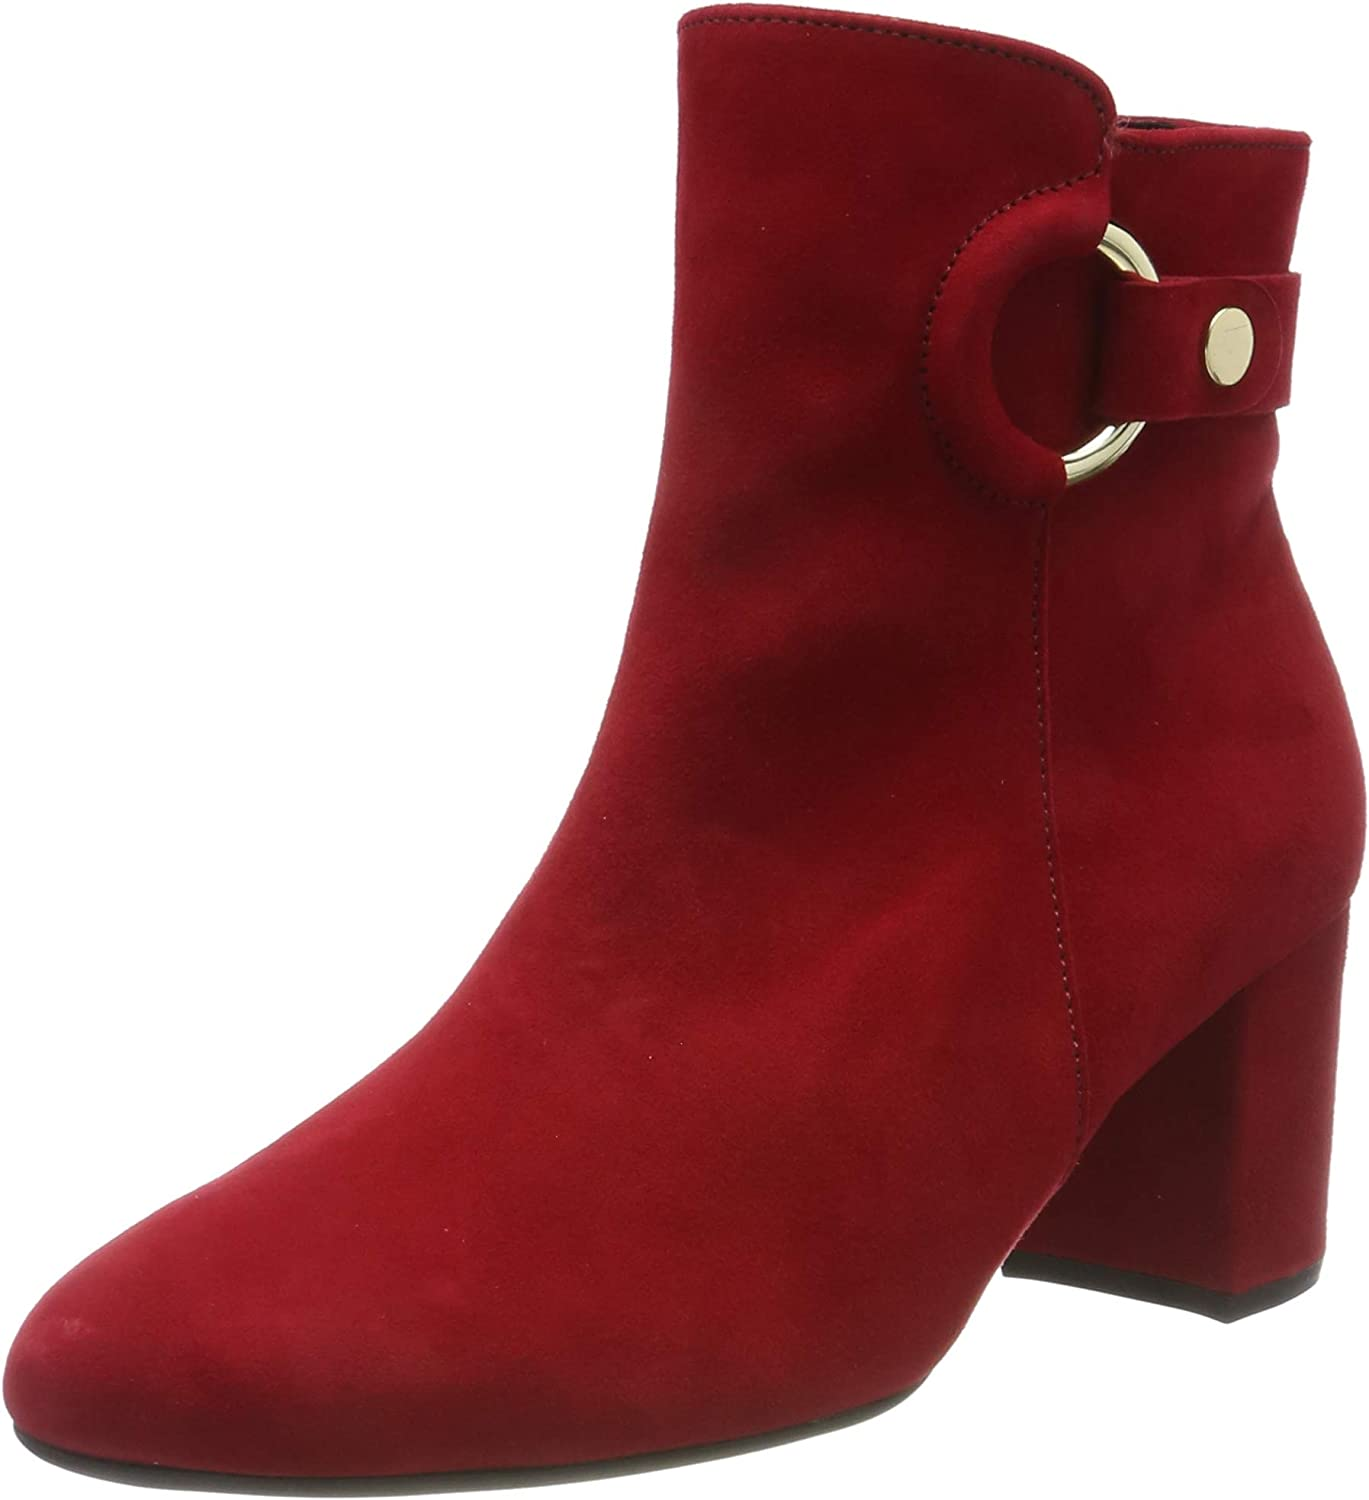 Gabor Arlington Mall Women's boots Max 49% OFF Ankle